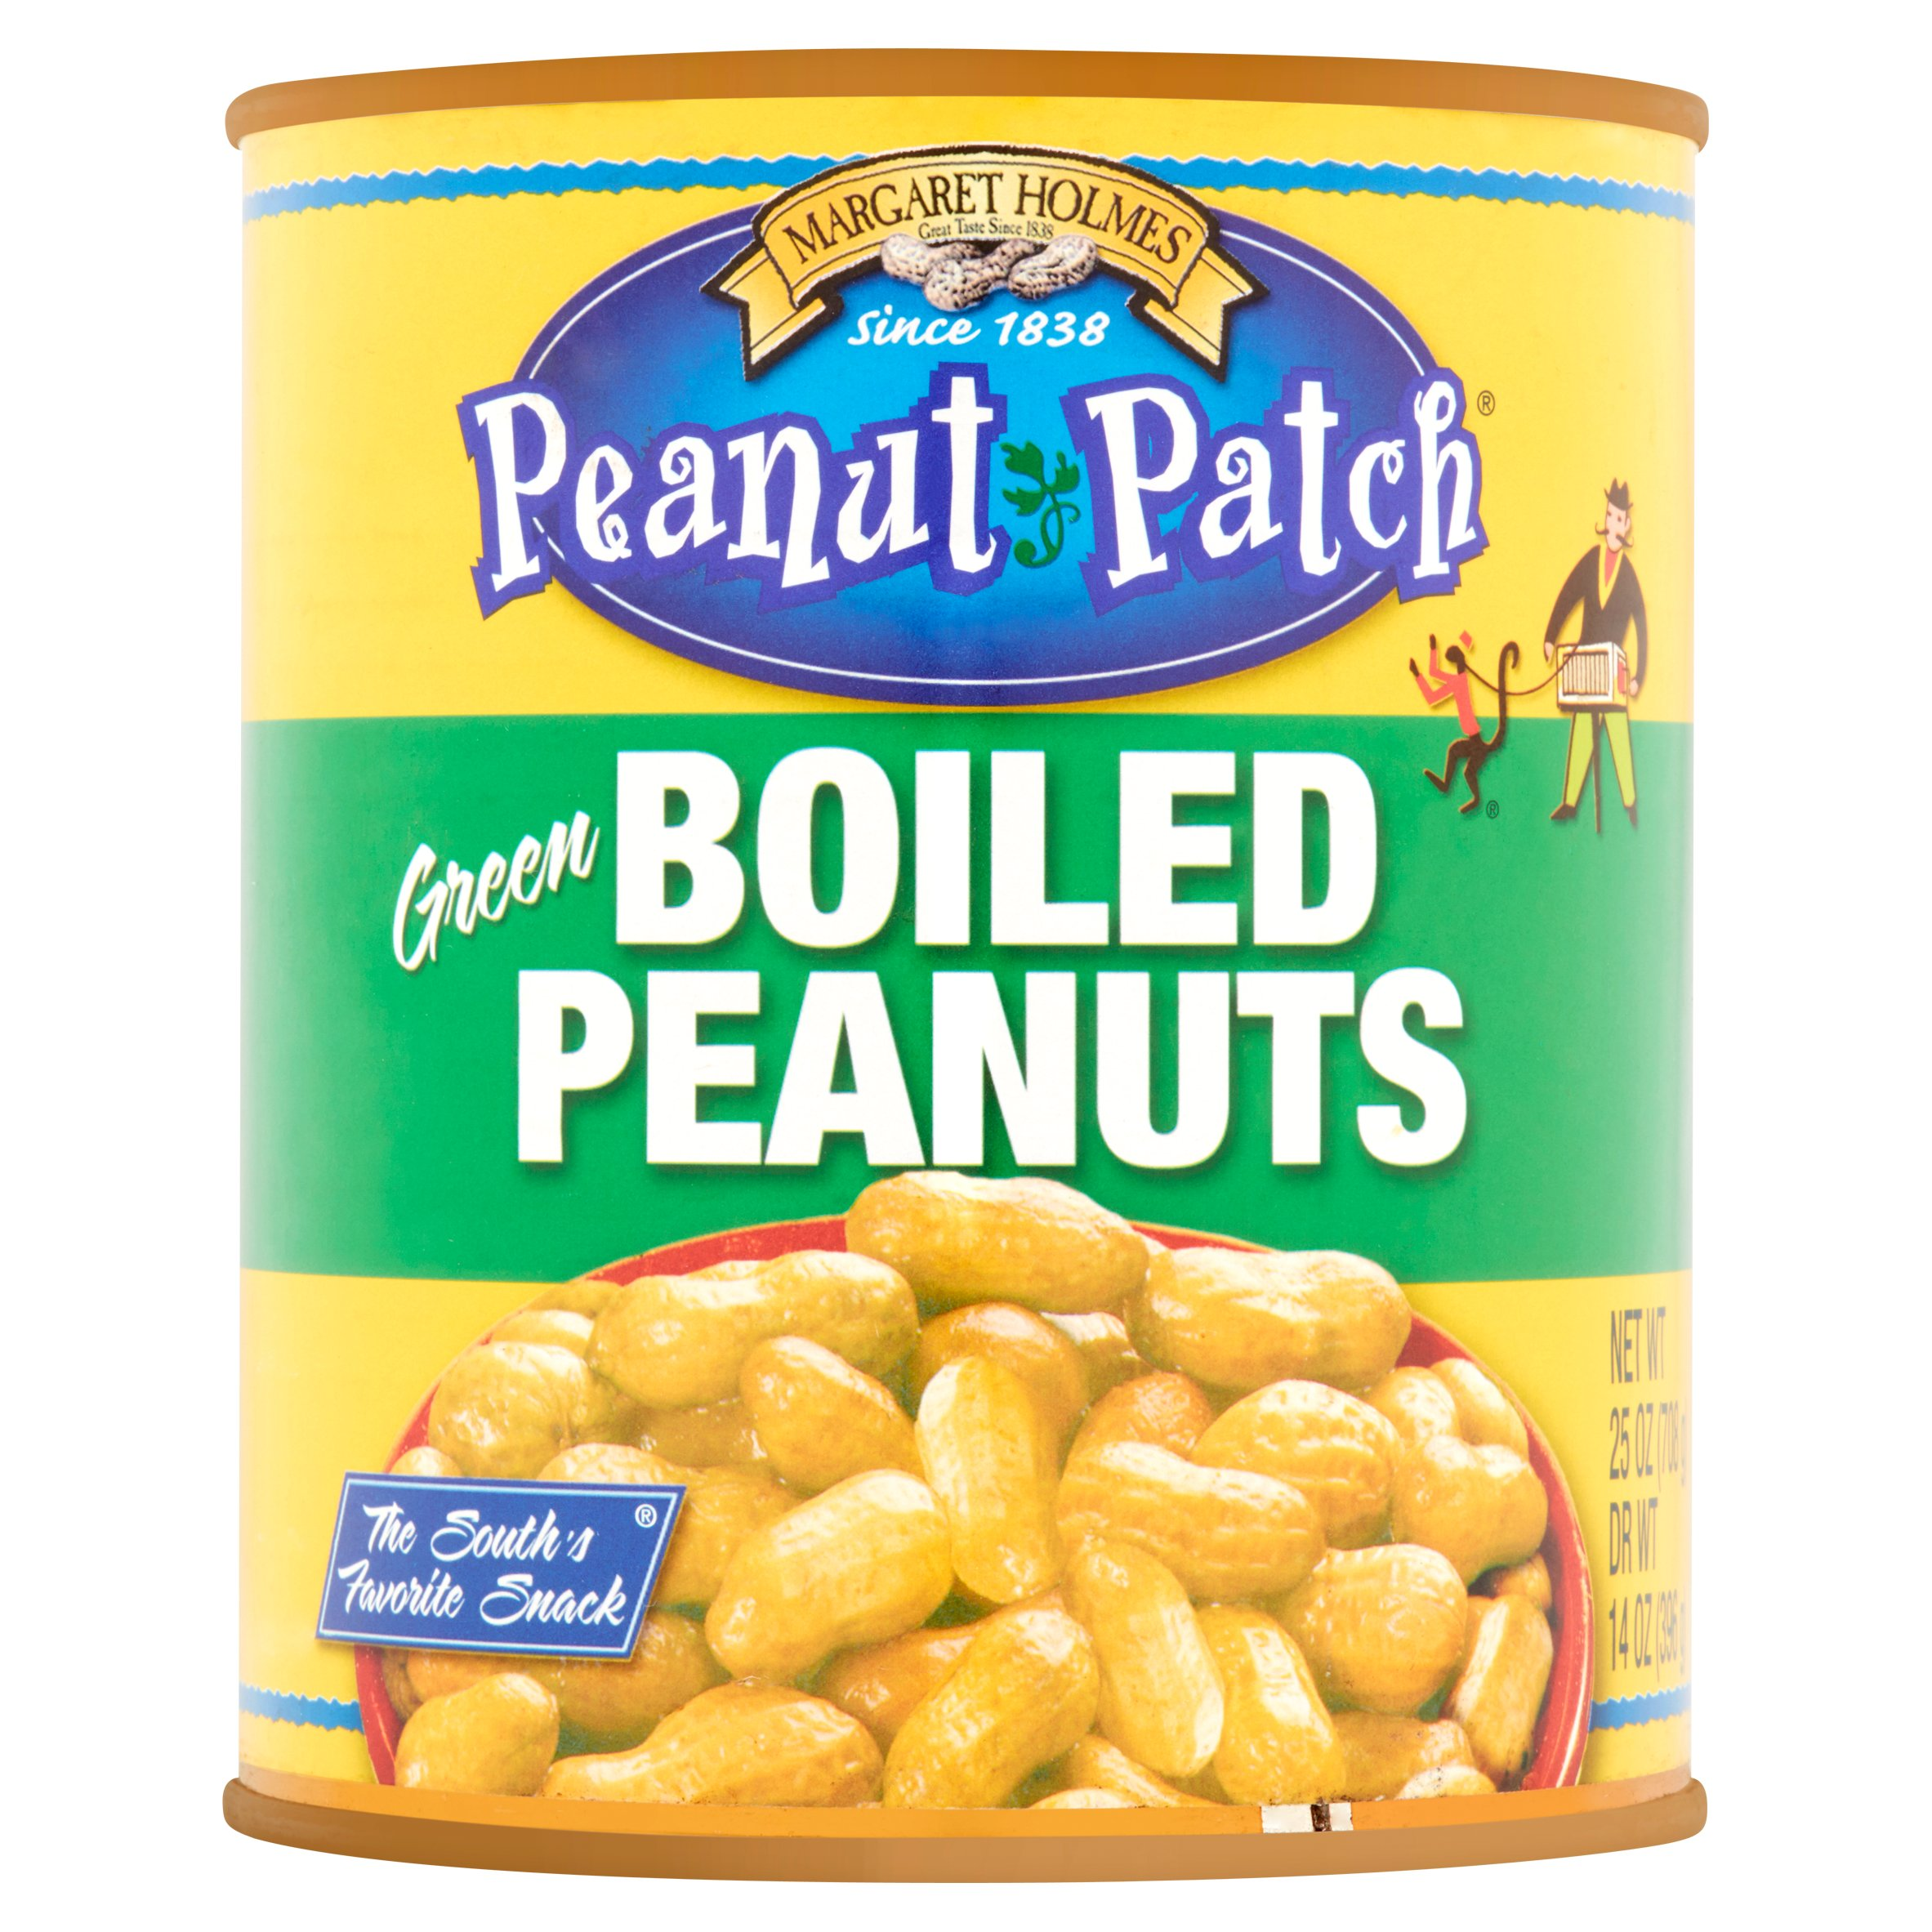 Margaret Holmes Peanut Patch Green Boiled Peanuts, 27 oz